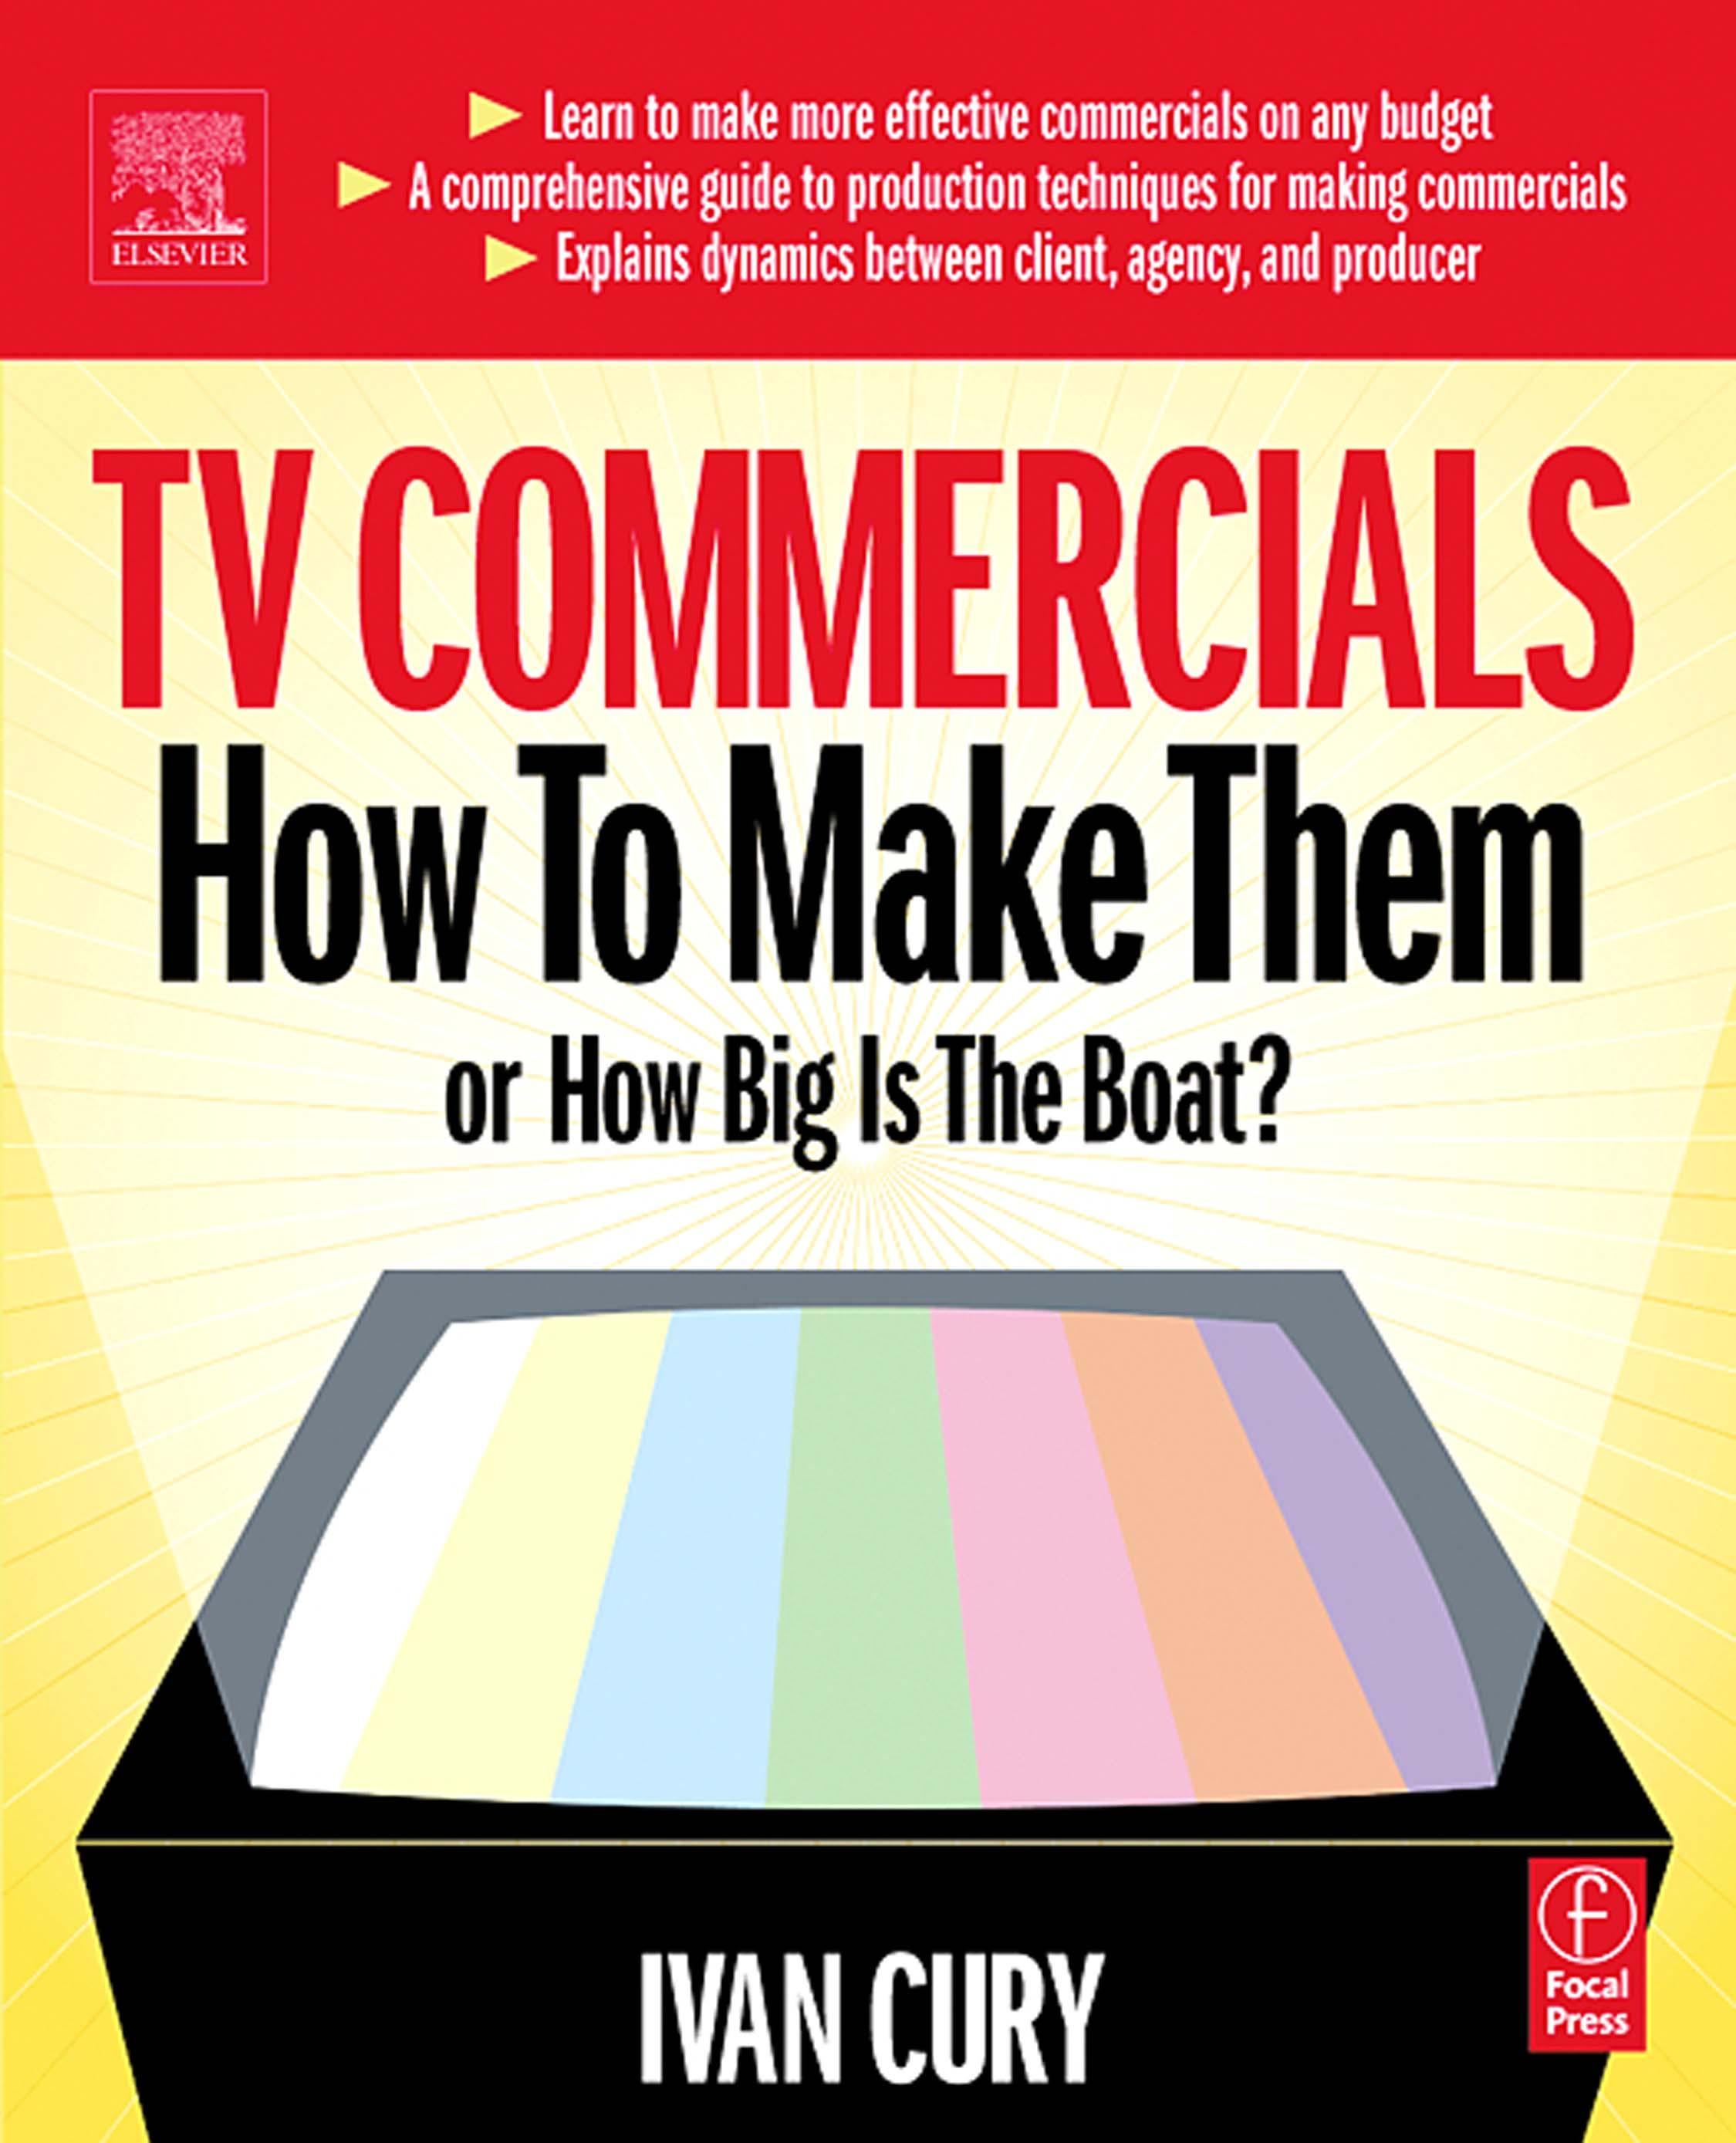 TV Commercials: How to Make Them: or, How Big is the Boat? Ivan Cury